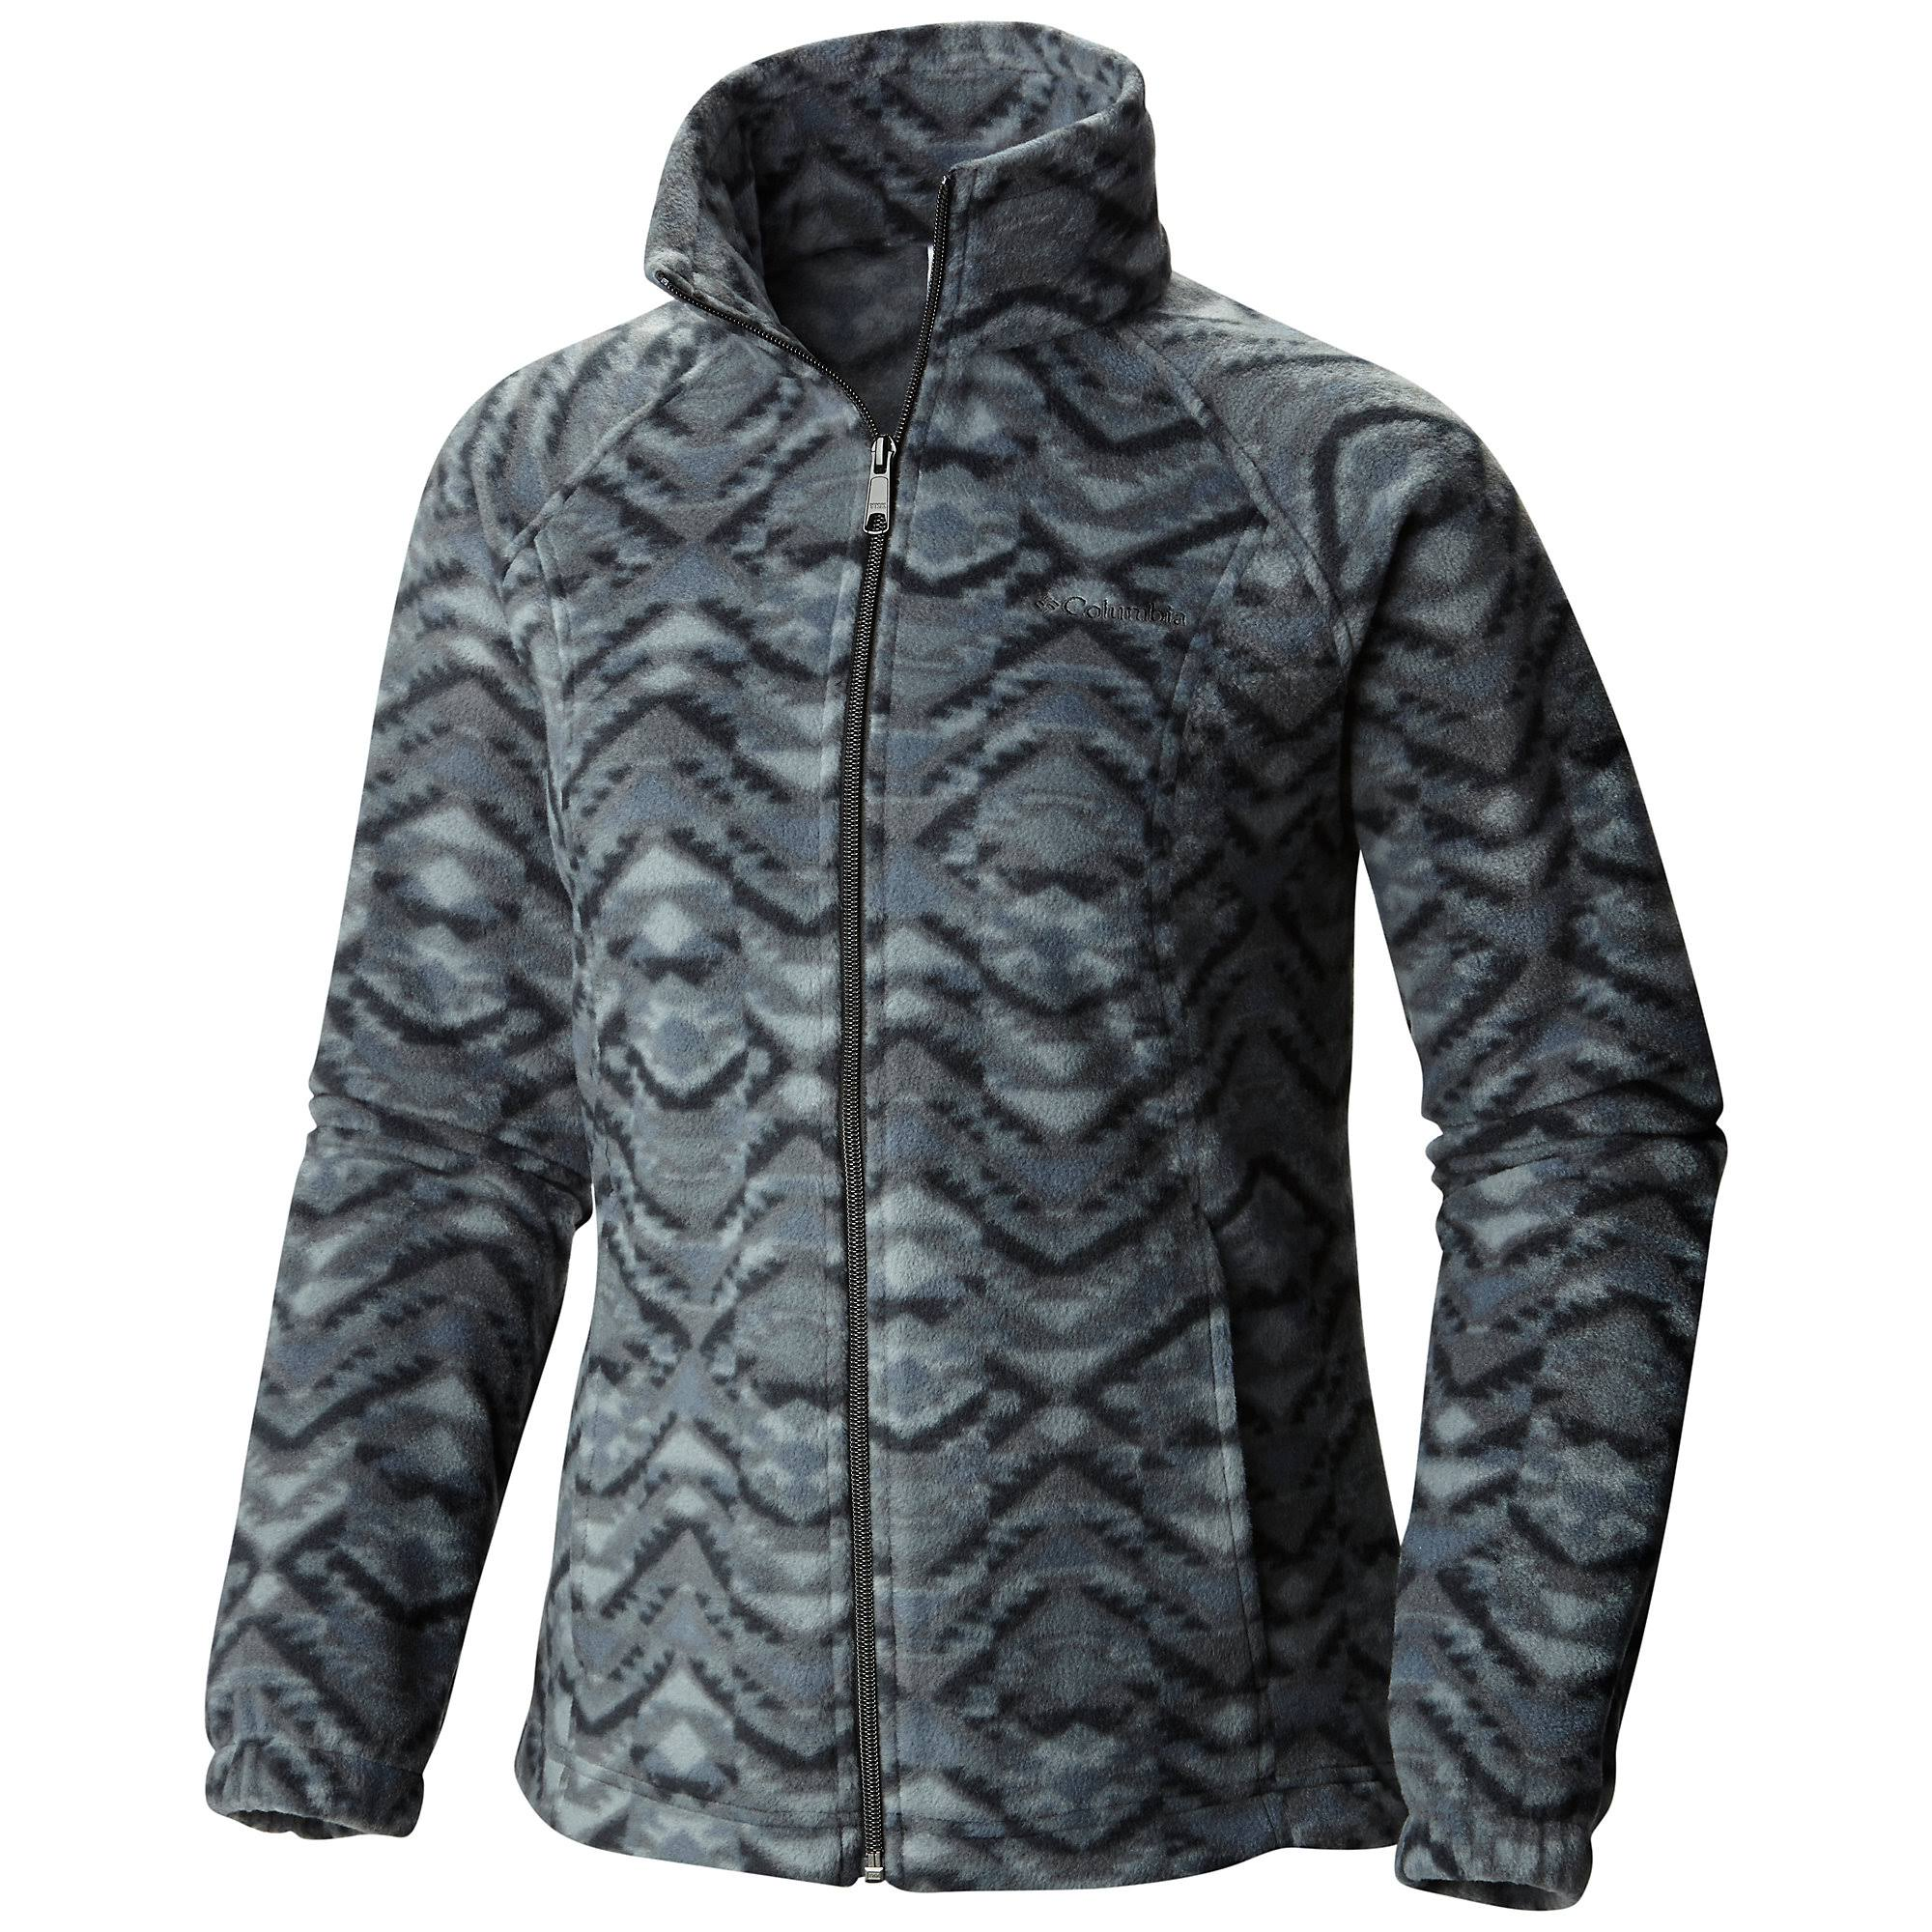 Columbia Women's Benton Springs Printed Full Zip Jacket - L - Black Navajo Print